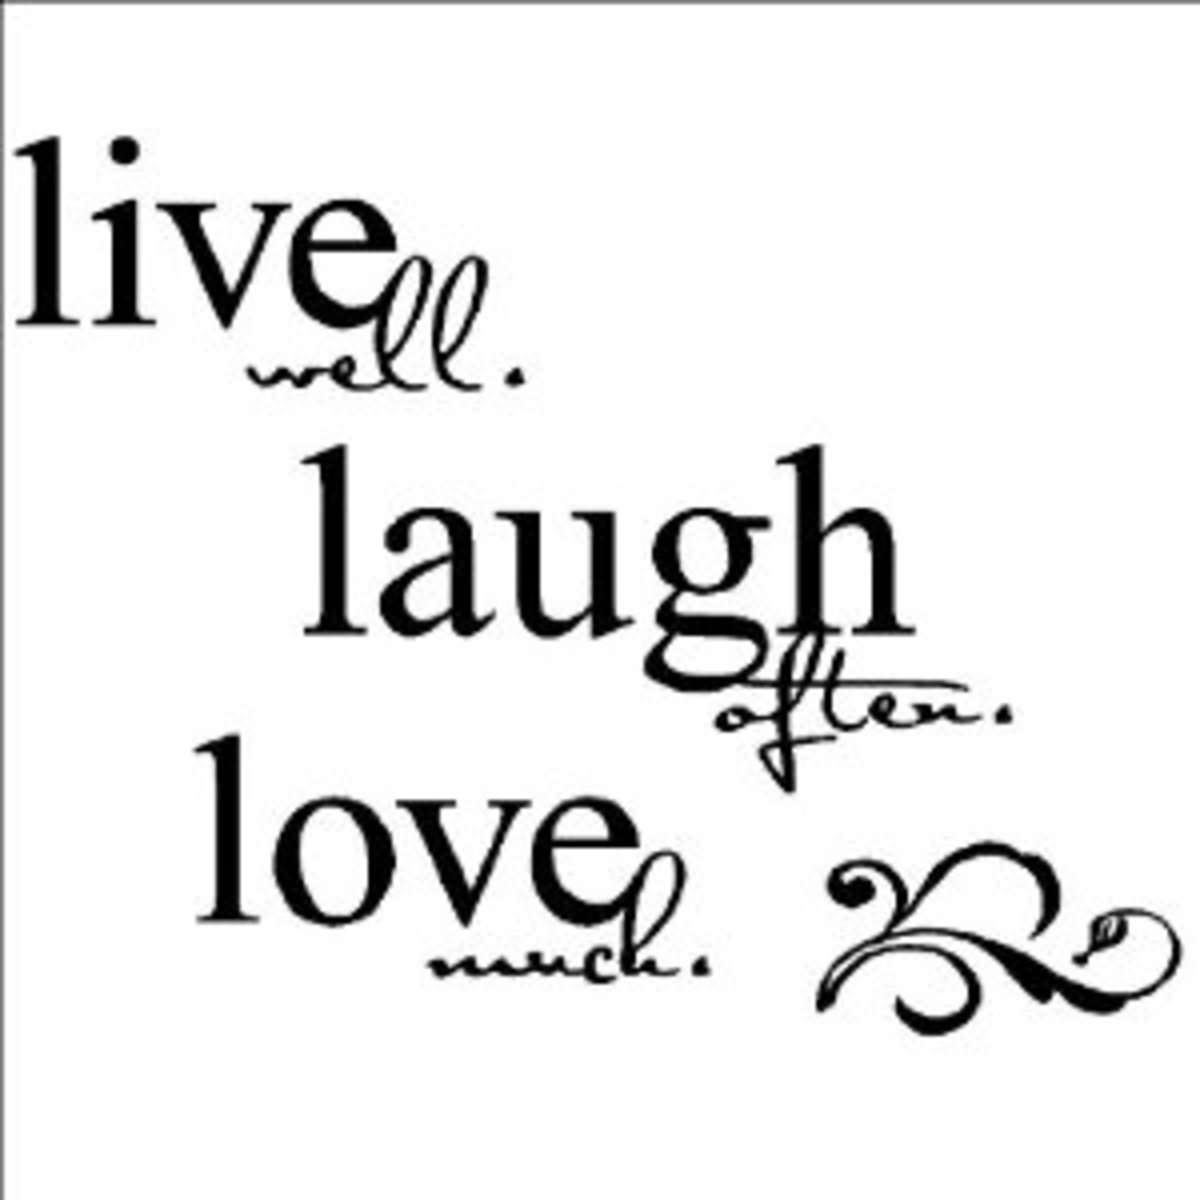 Wall decor live laugh love interior decorating for Live laugh love wall art